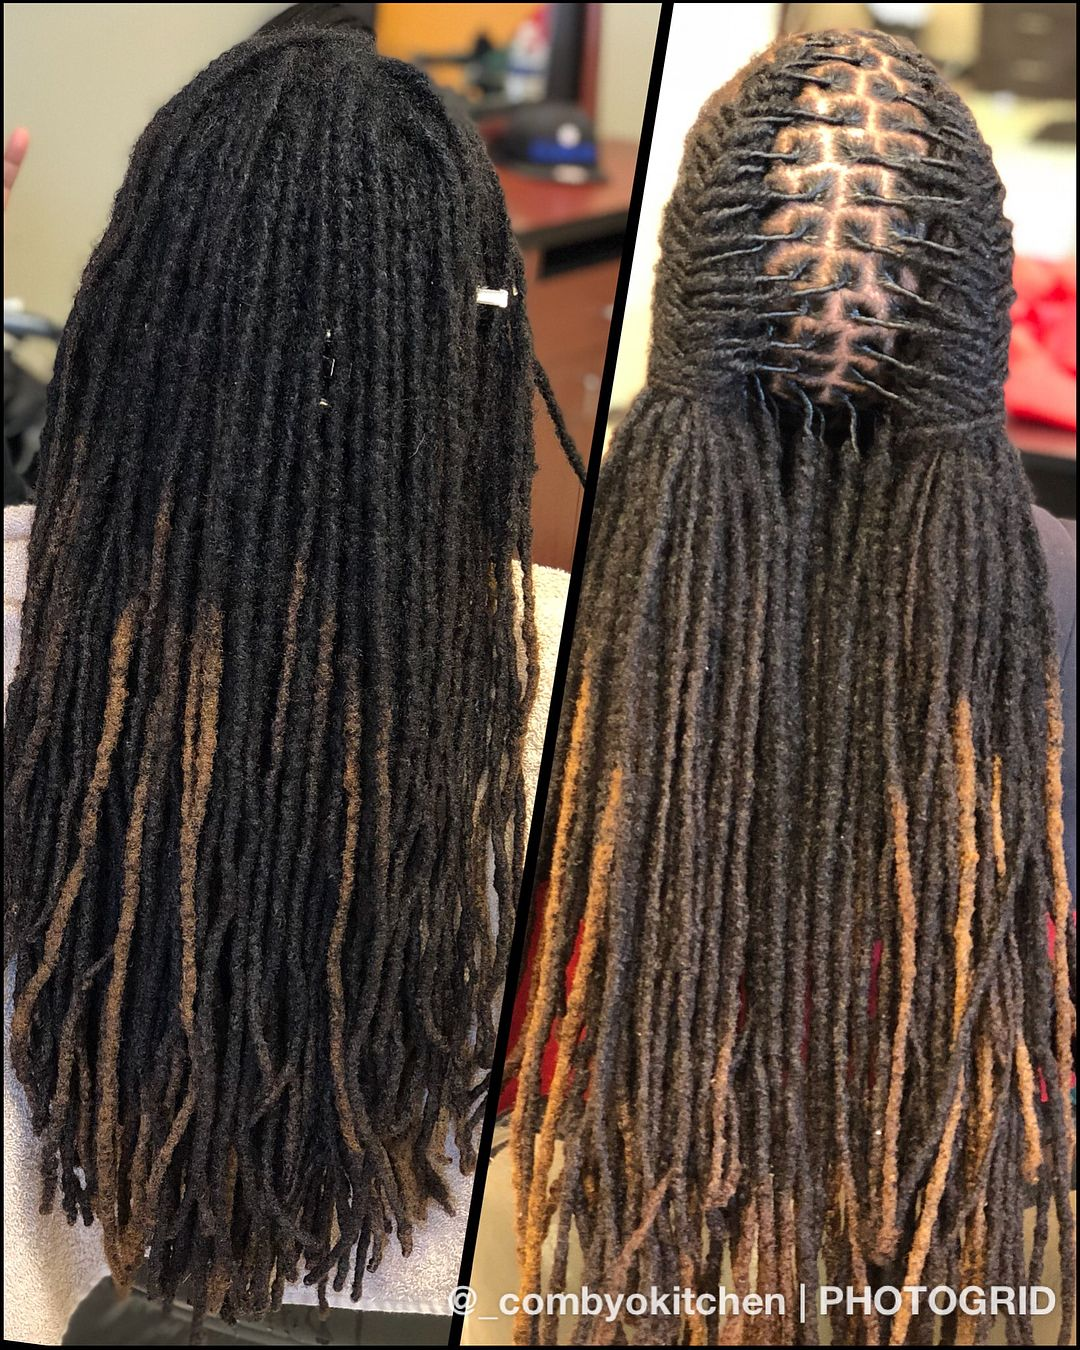 Beauty Grooming Journalist Of The Year: Show Me My Opponent 👀🔥 Been Grooming These Locs 8.5 Years